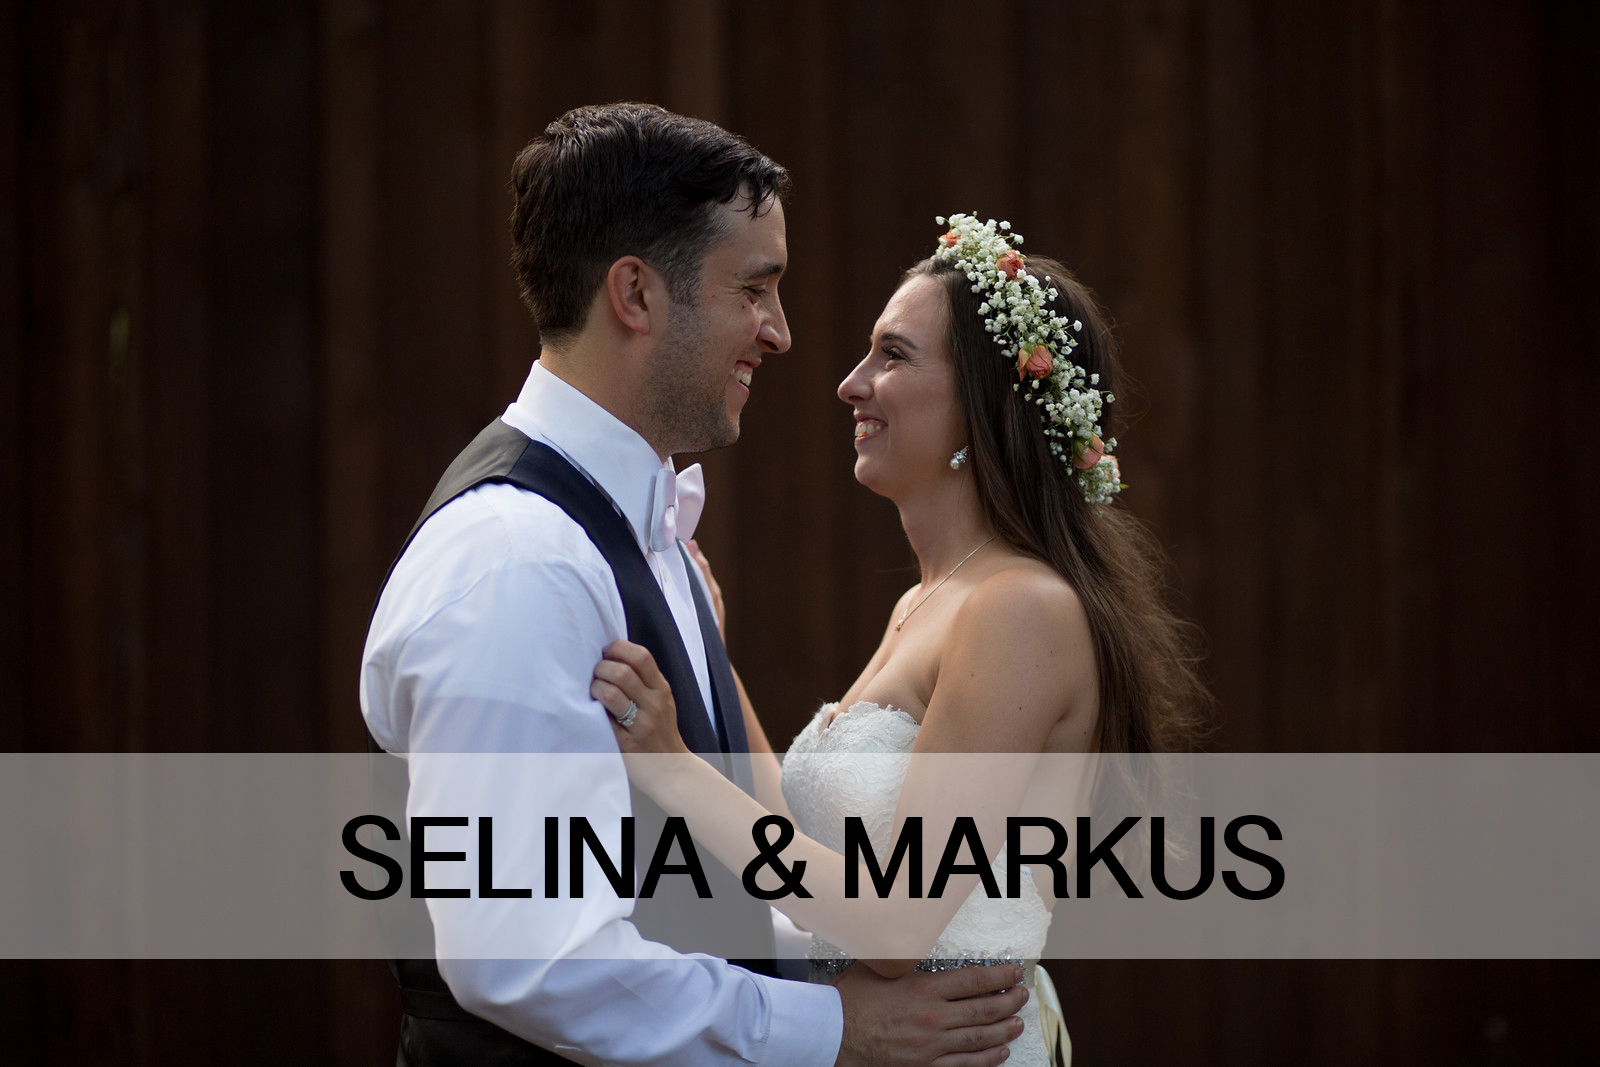 Selina and Markus Wedding